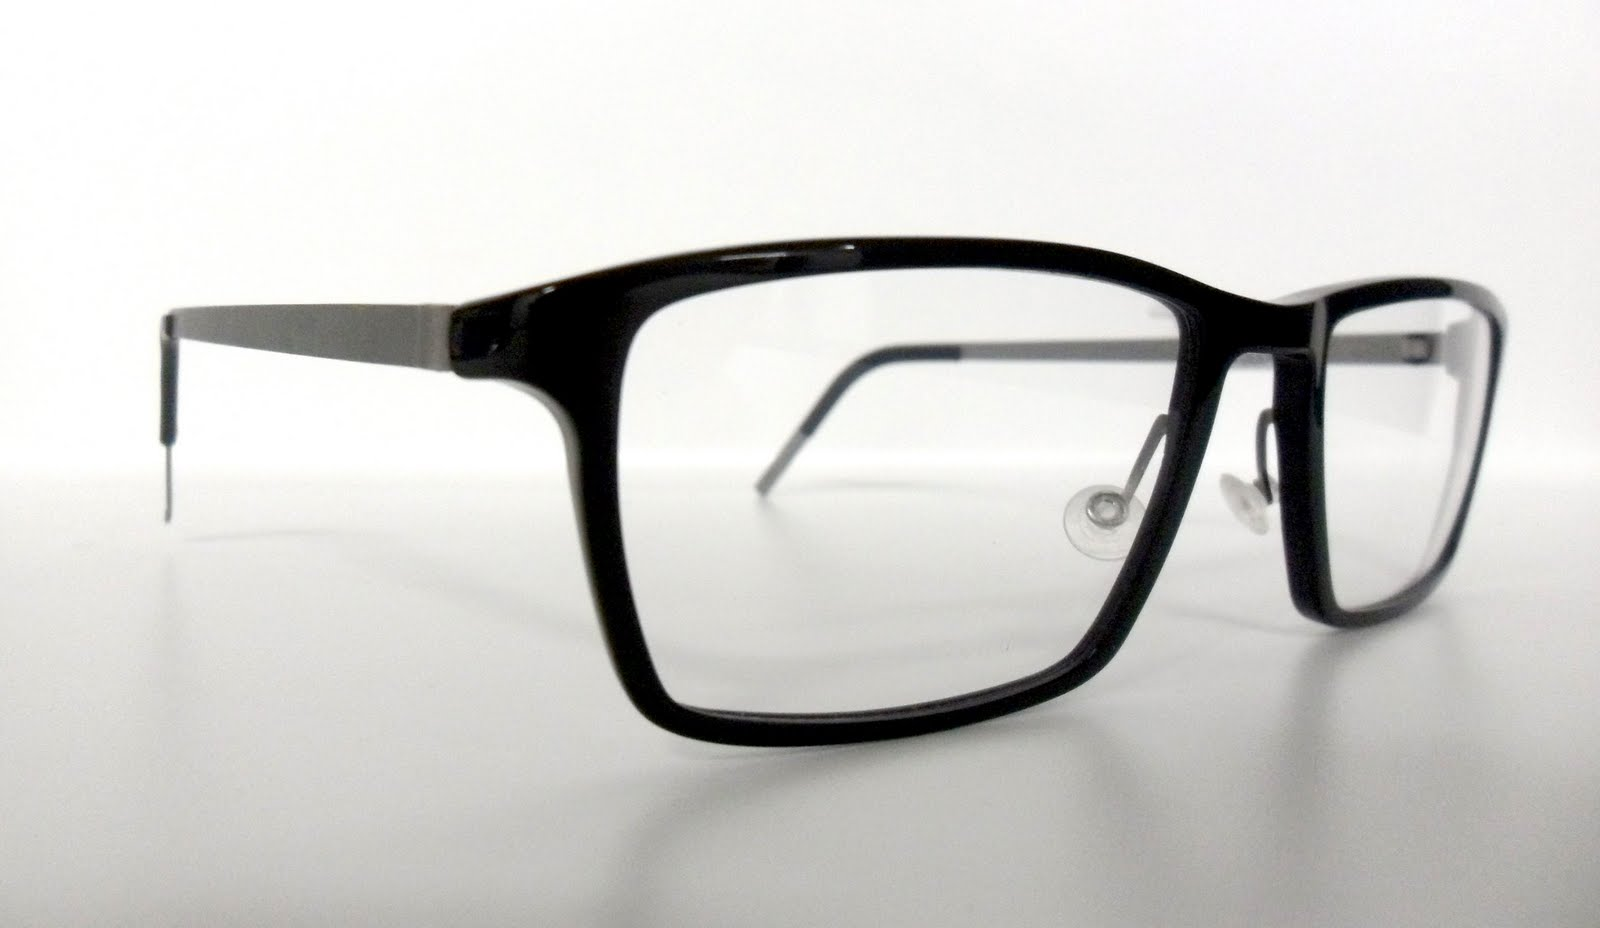 Glasses Frames Lindberg : Michael Holmes Premium Eyewear: Have you ever tried ...